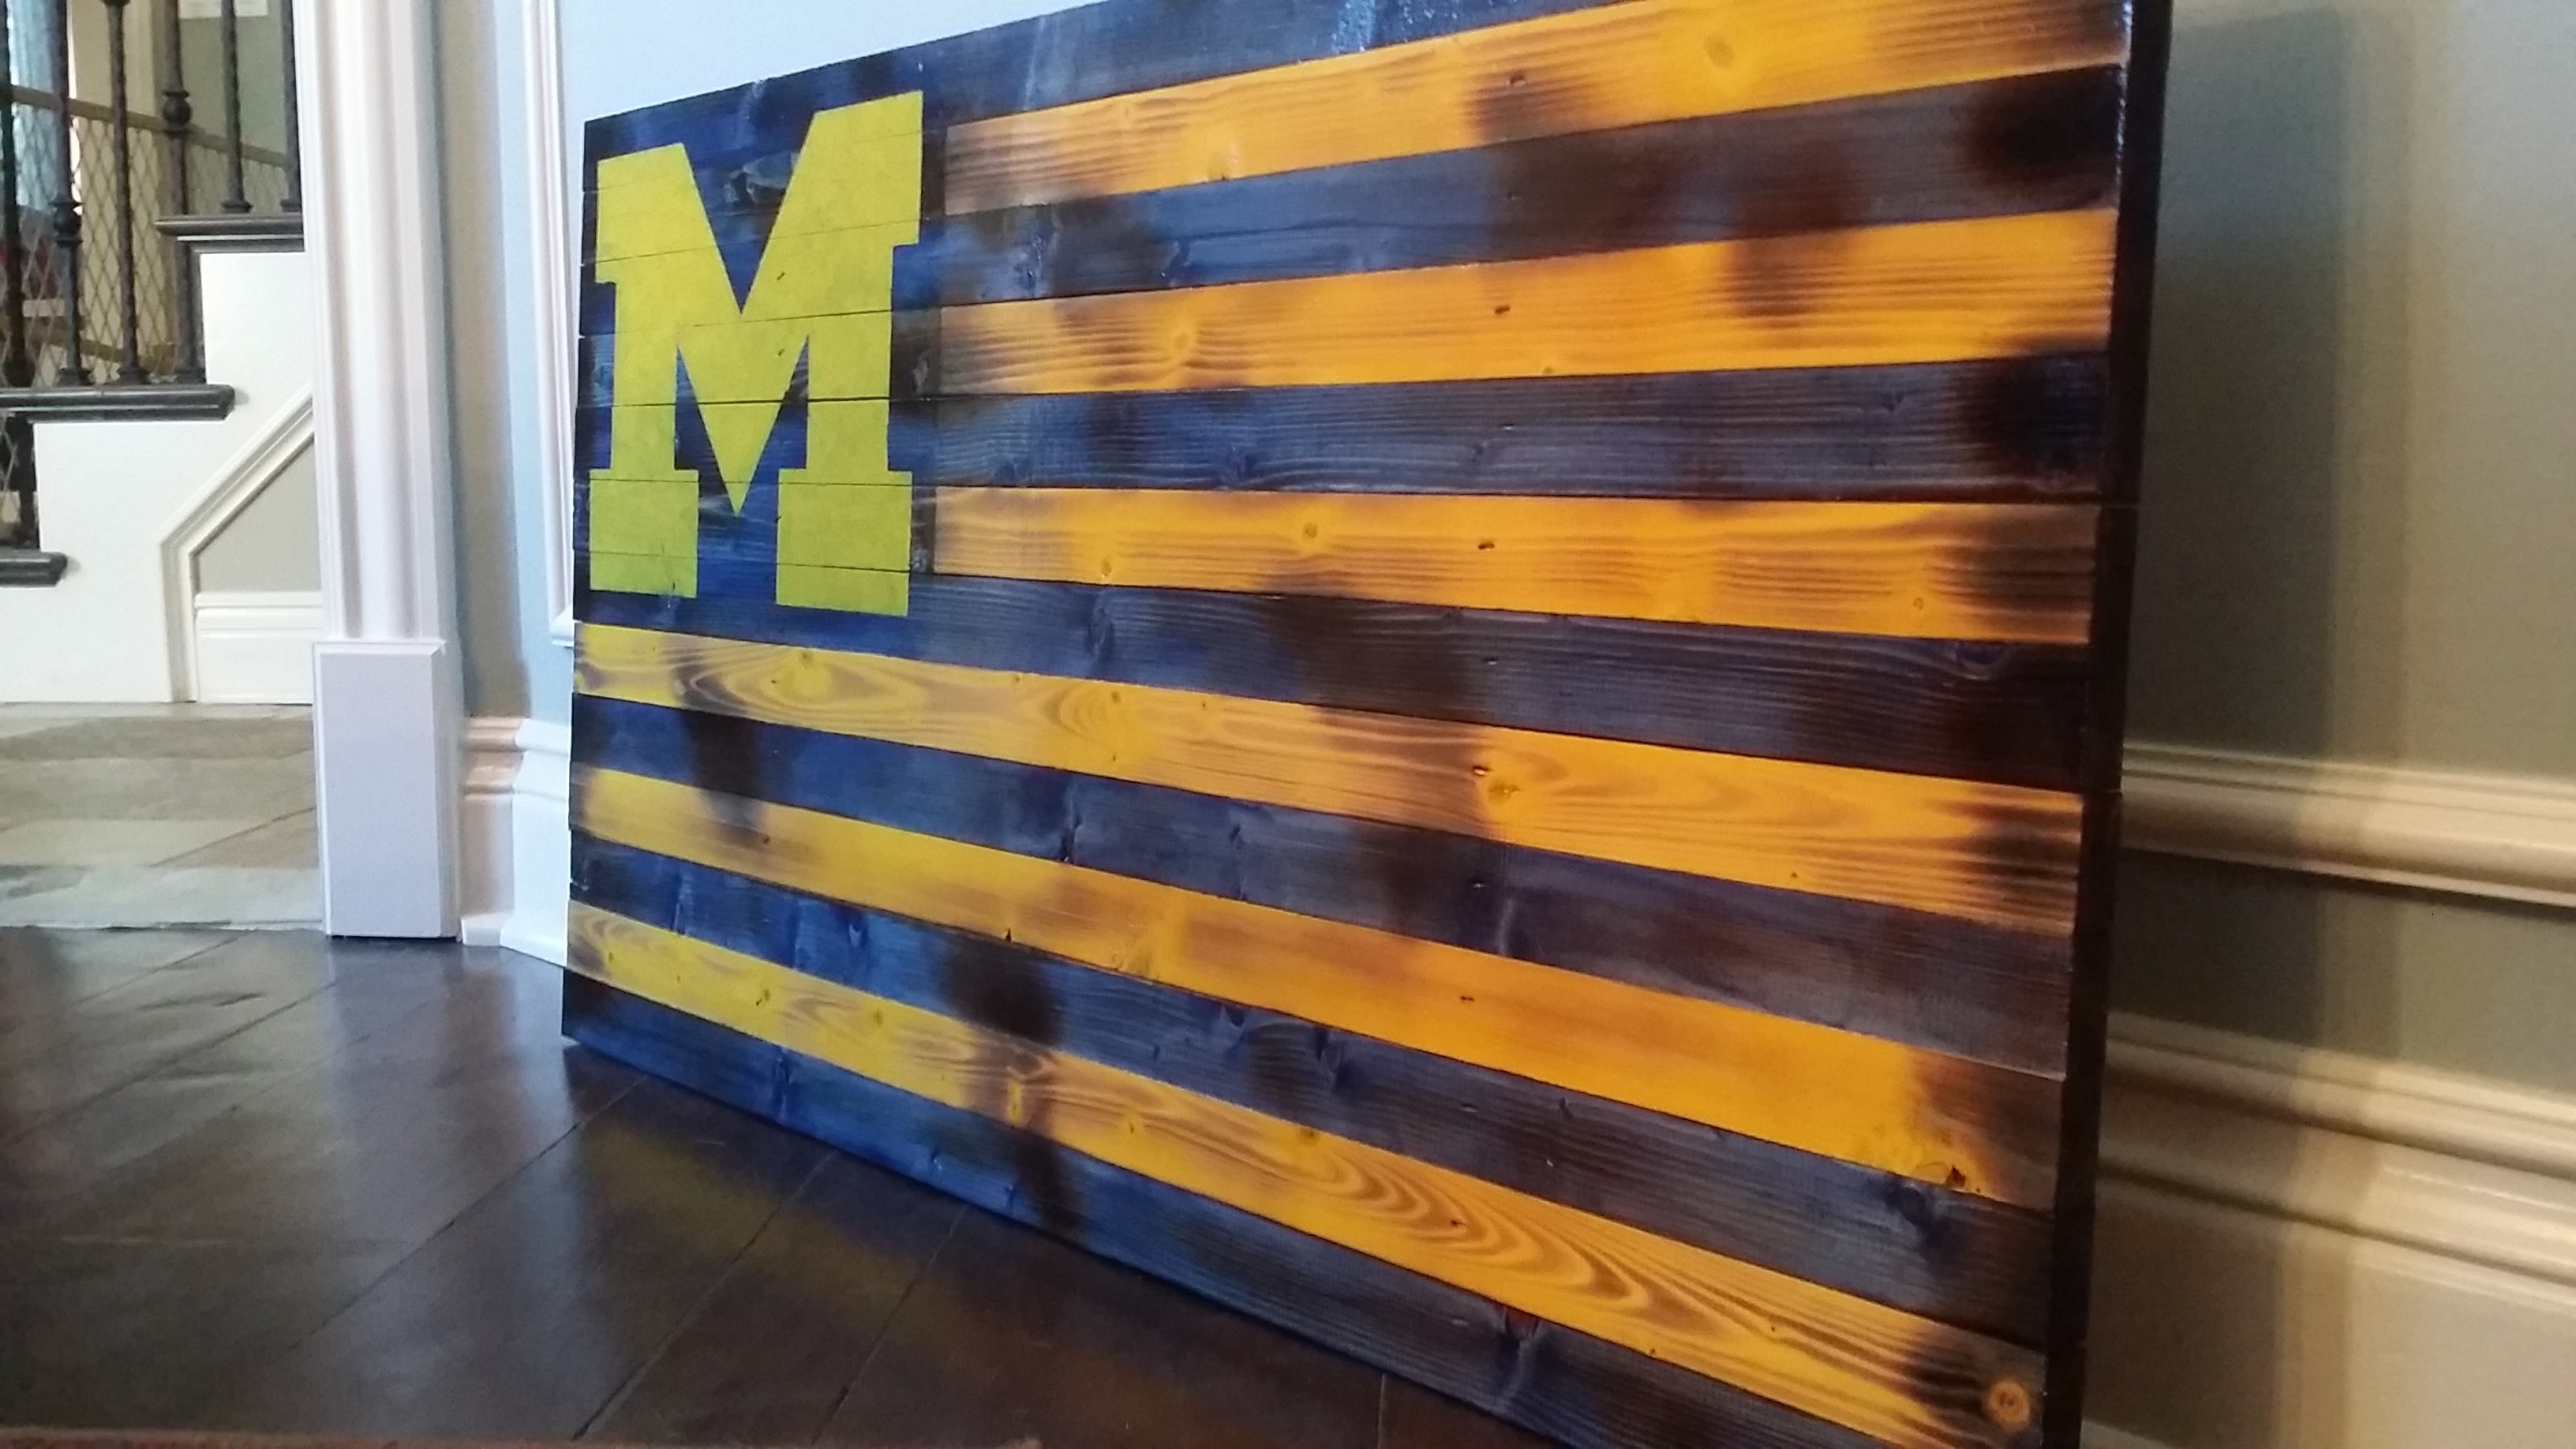 Rustic U Of M Flag With Regard To Current Michigan Wall Art (View 2 of 20)